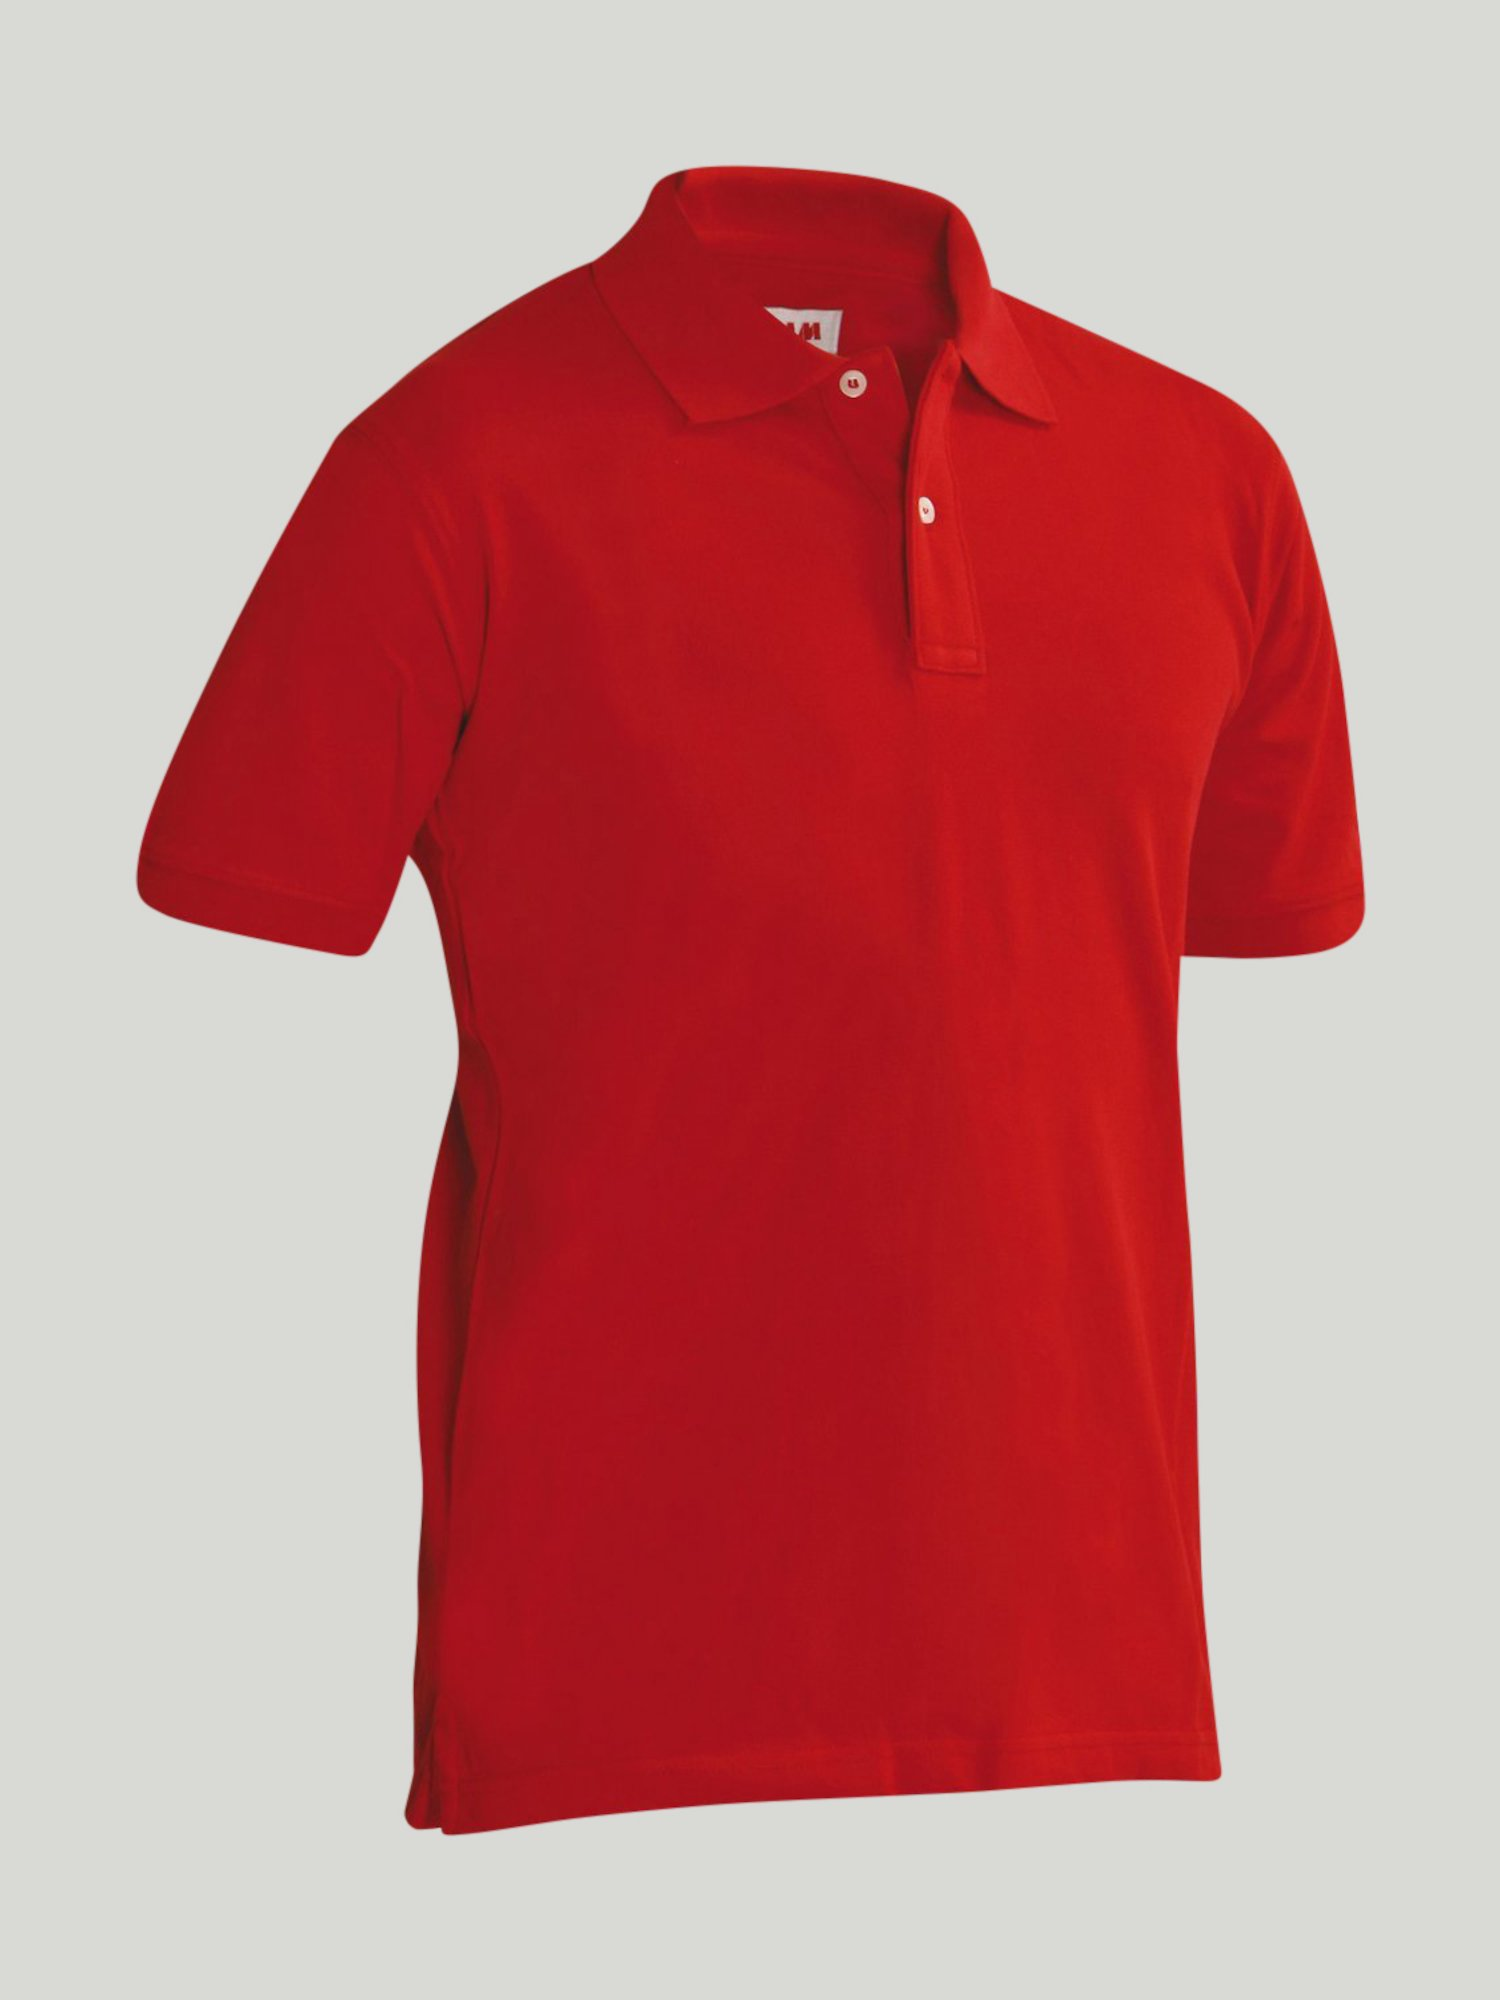 Coleman Ss New polo shirt - Slam Red